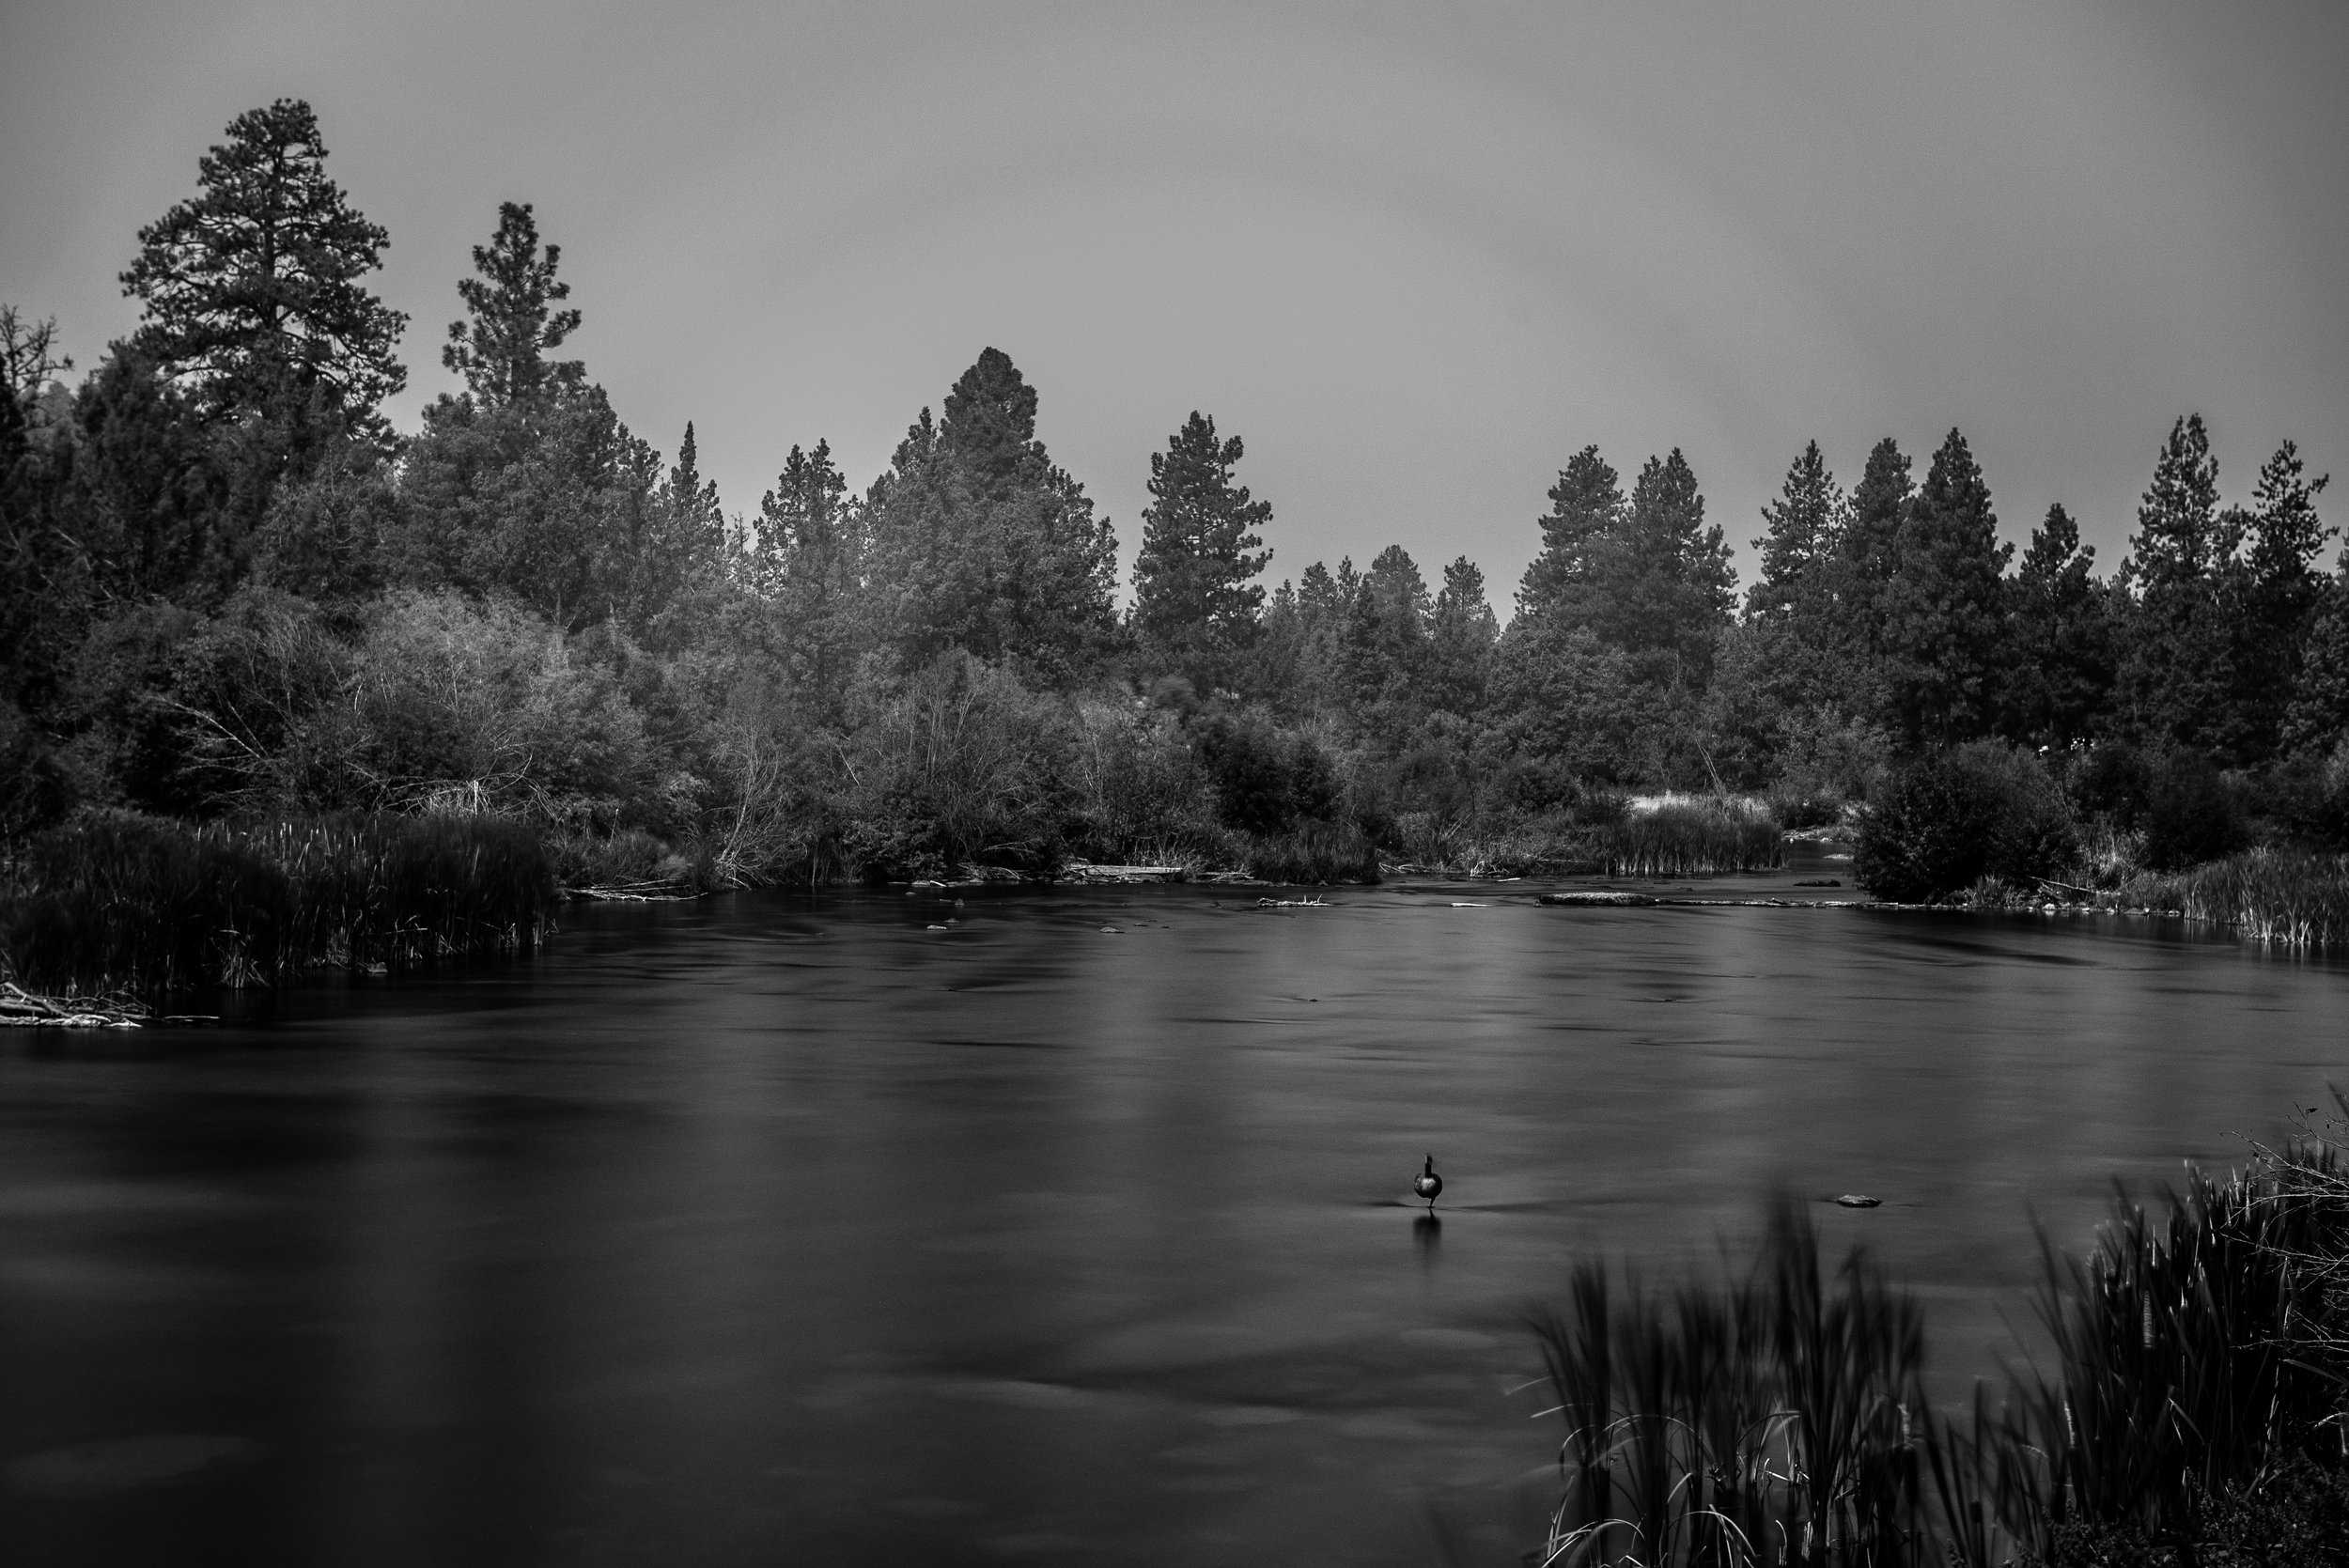 Goose on the Deschutes, Bend, OR (ISO 100, f/8, 176.0s)